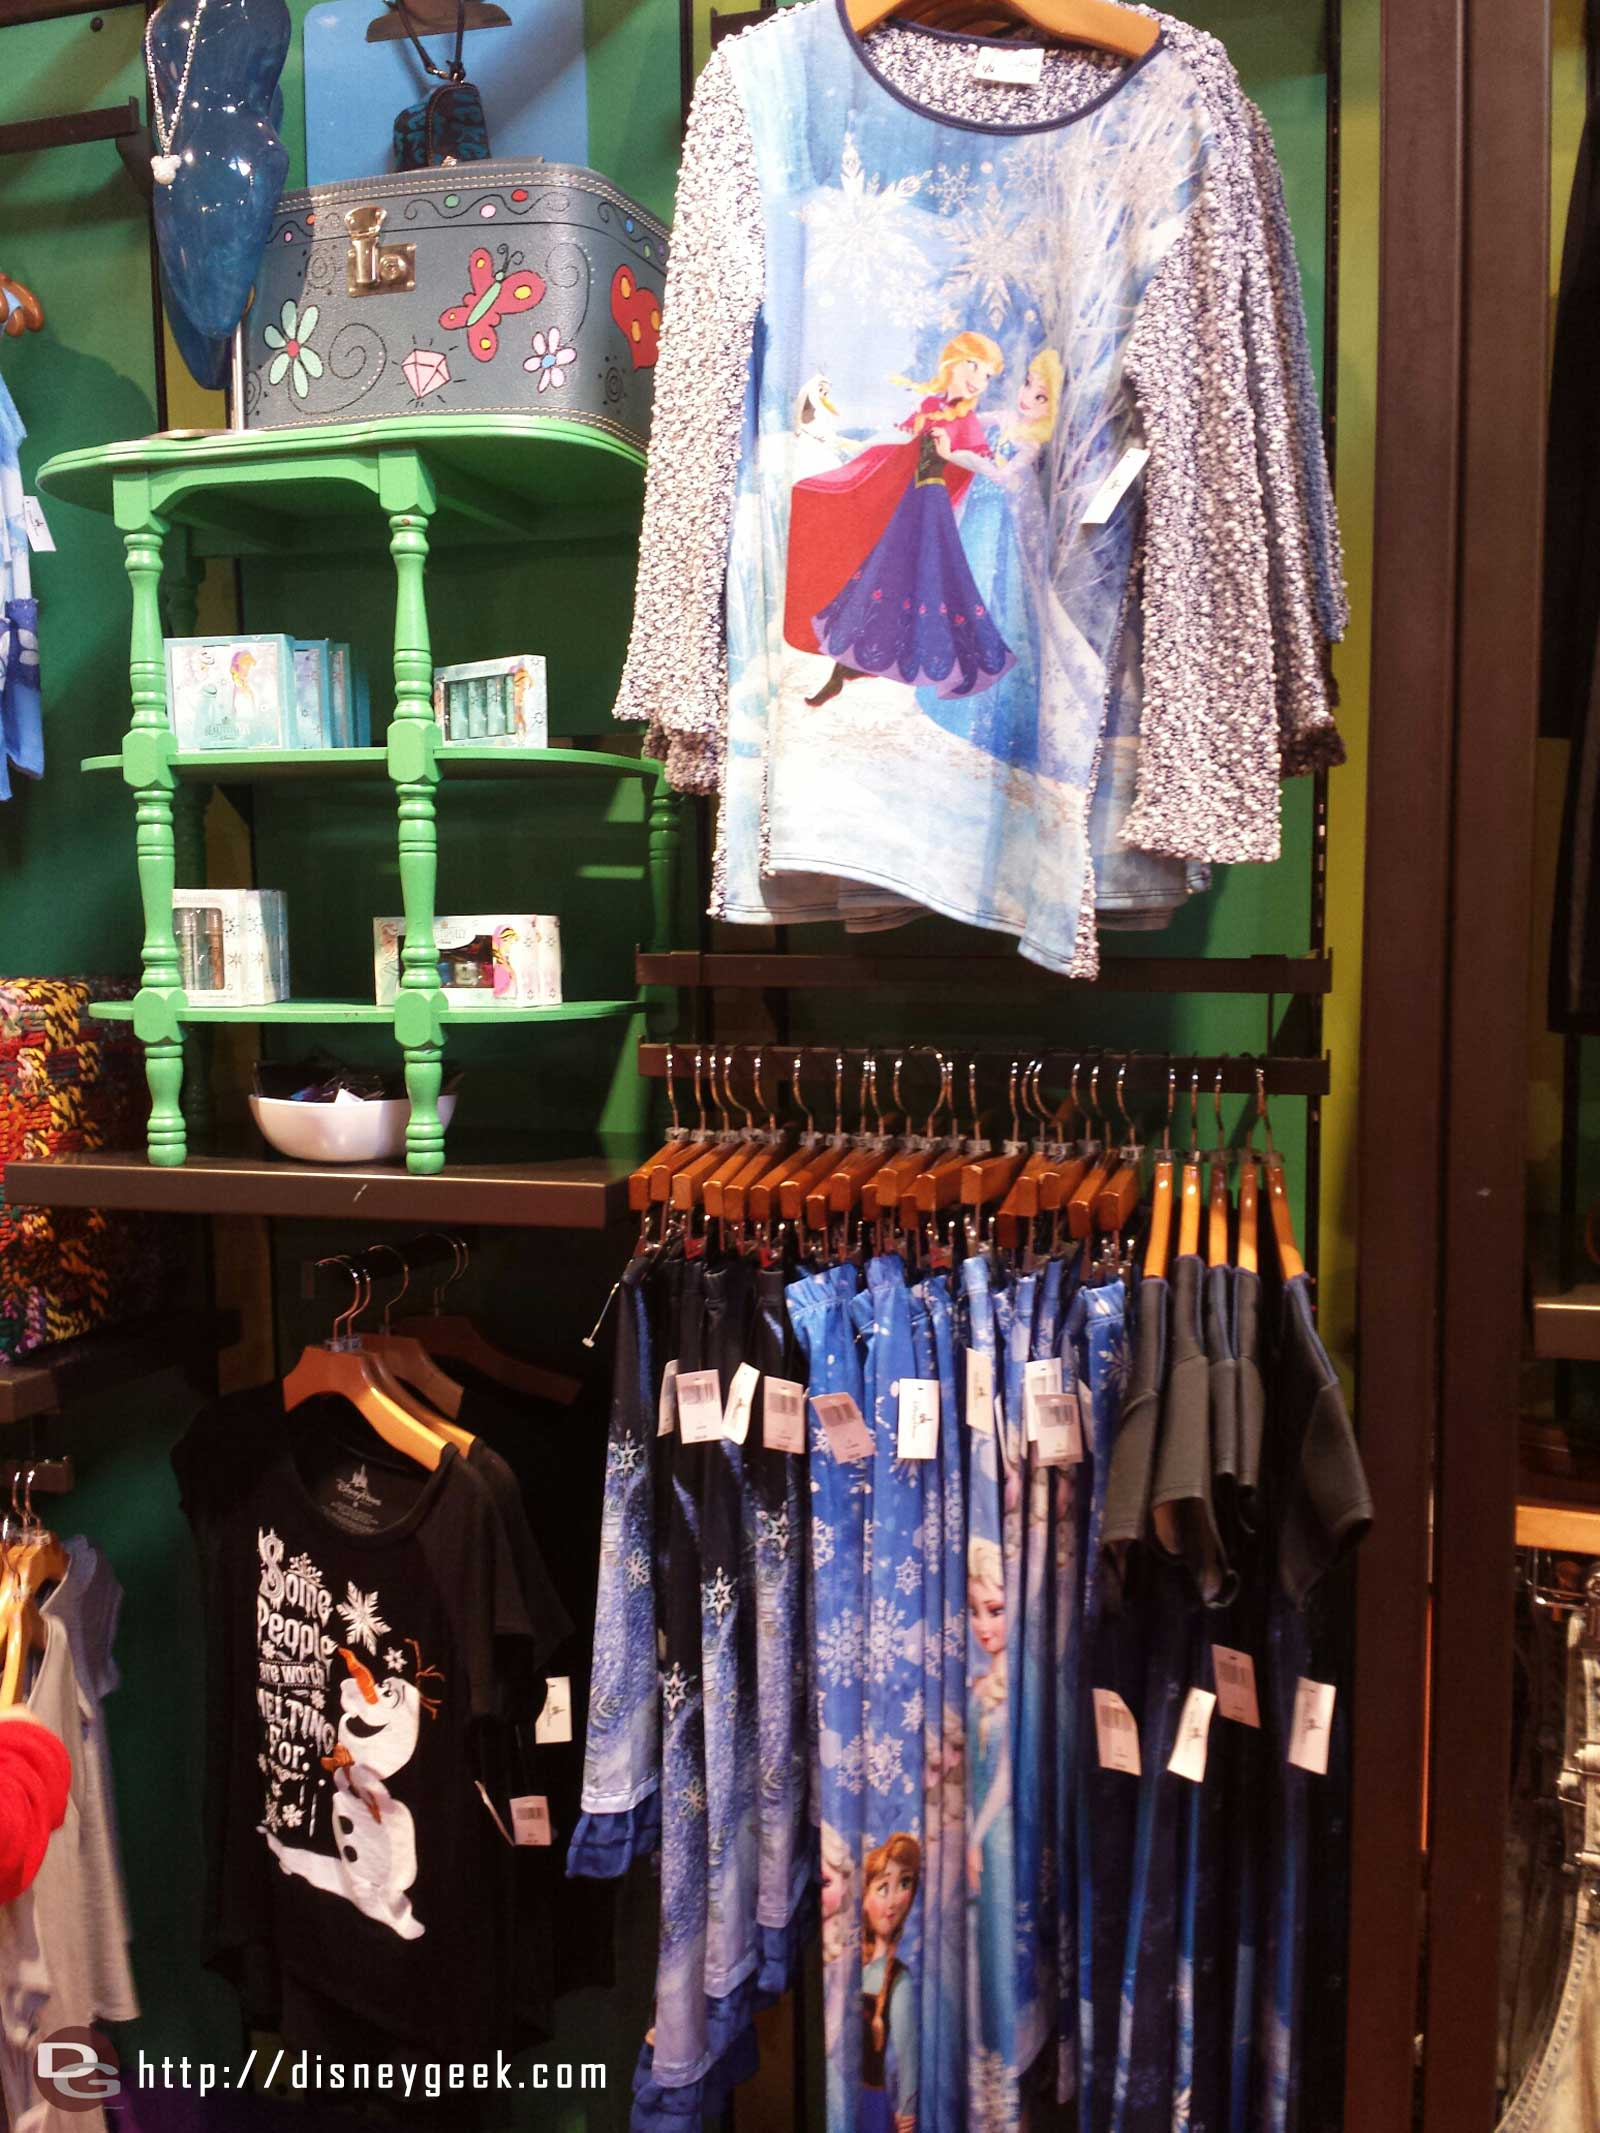 #Frozen merchandise in the co-op Downtown Disney Marketplace